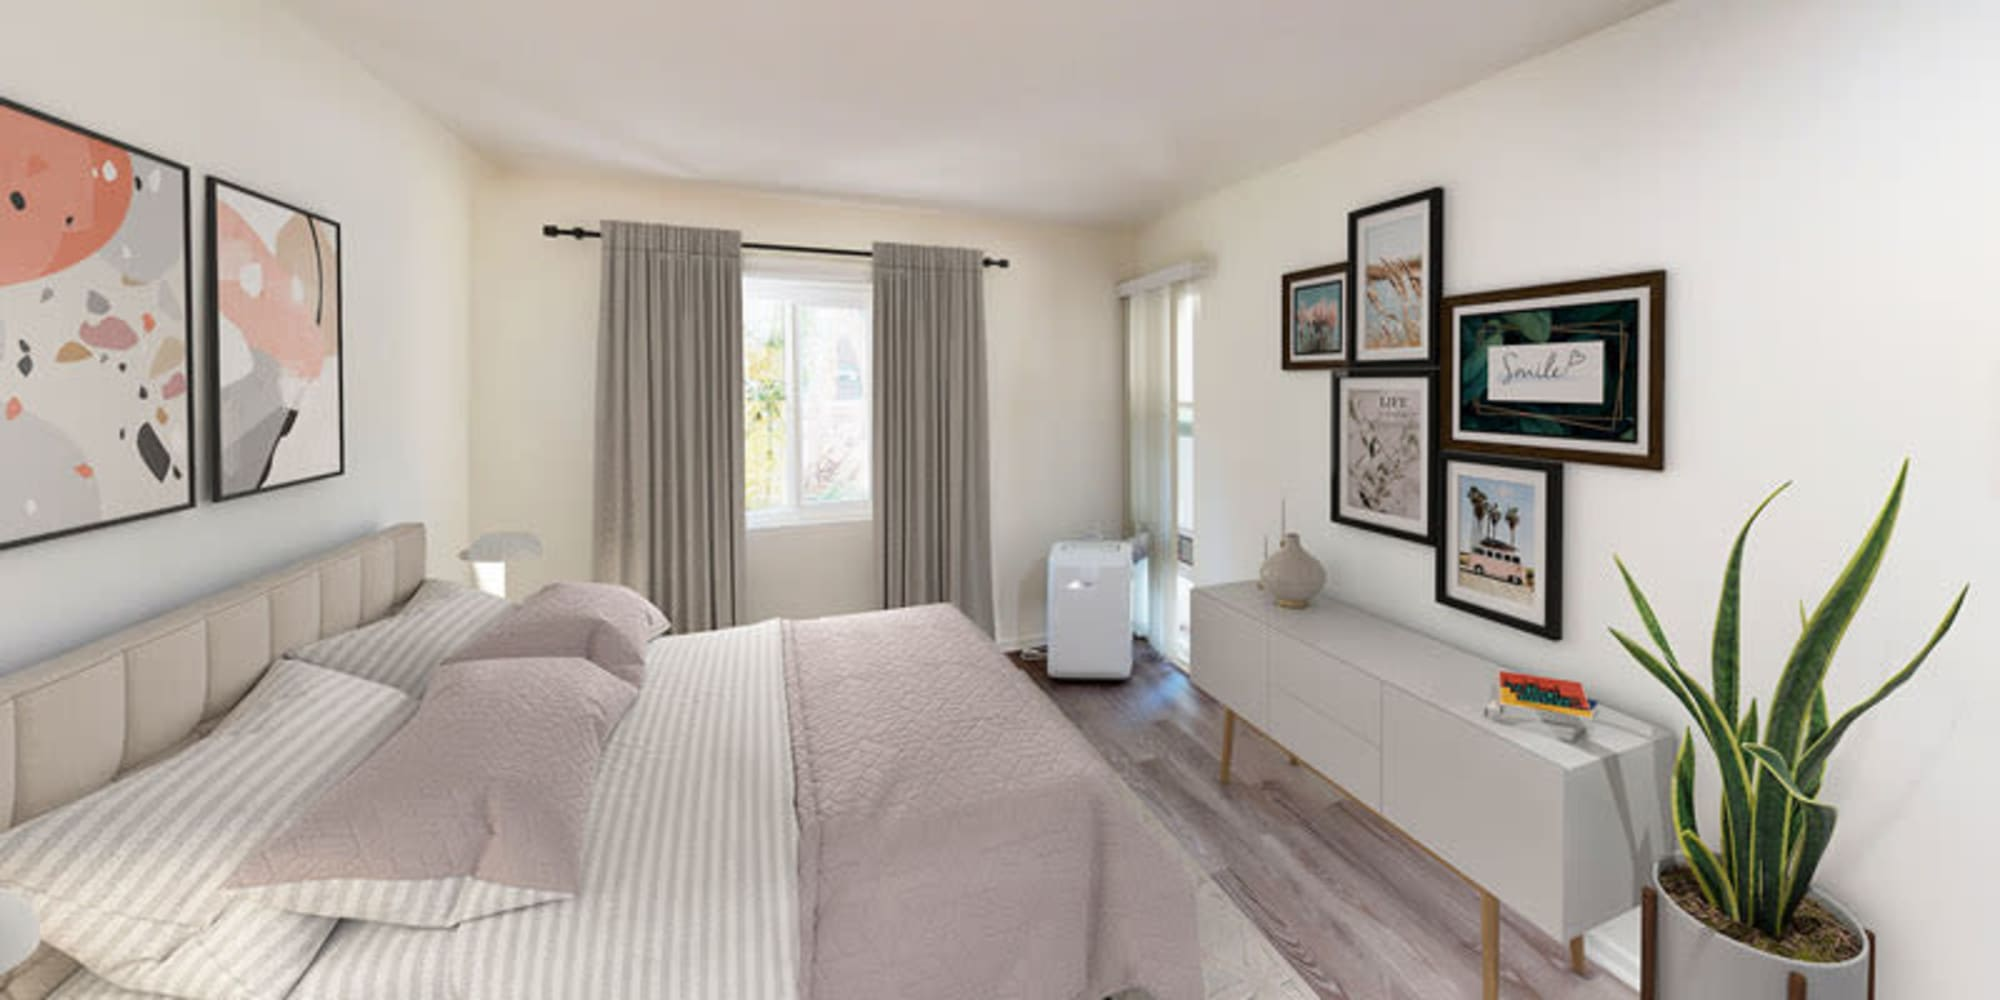 Open bedroom of one bedroom apartment at West Park Village in Los Angeles, California